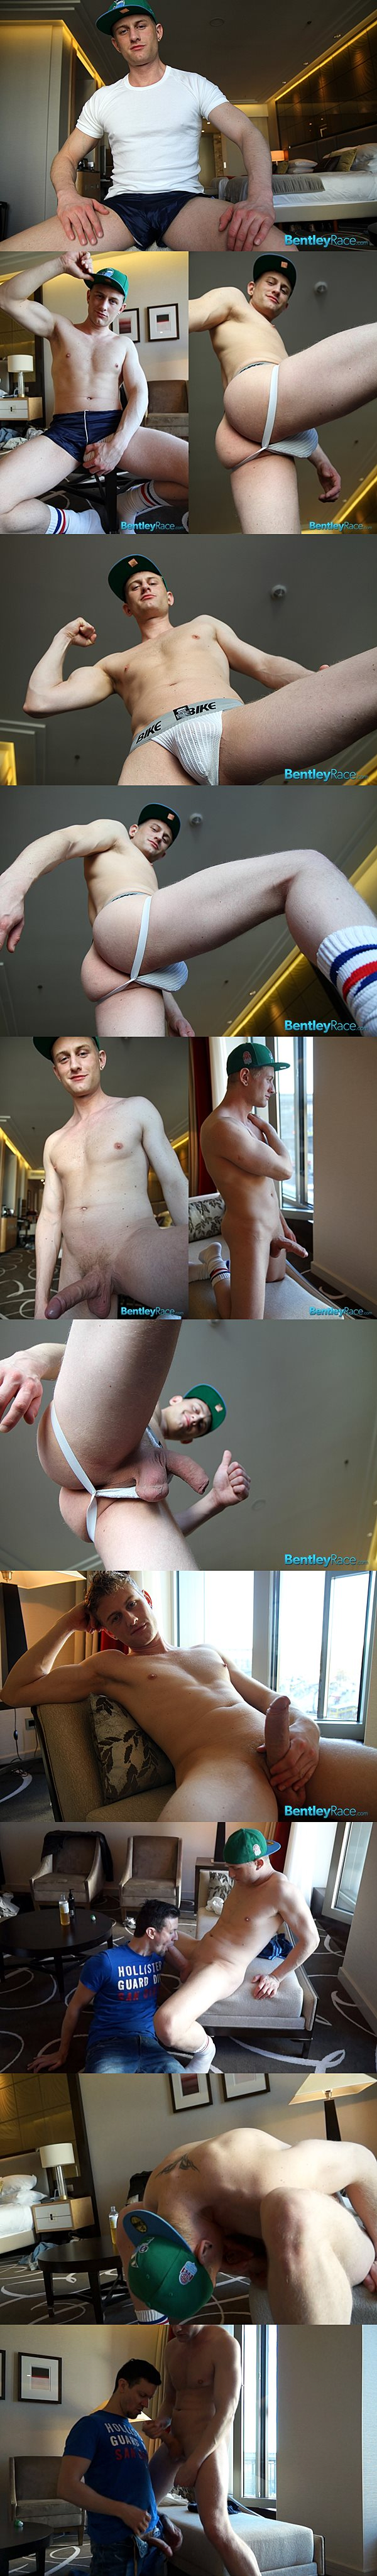 Hot blond Swedish jock Phillip Anderson shows off his huge uncut dick and dumps his big loads at Bentleyrace